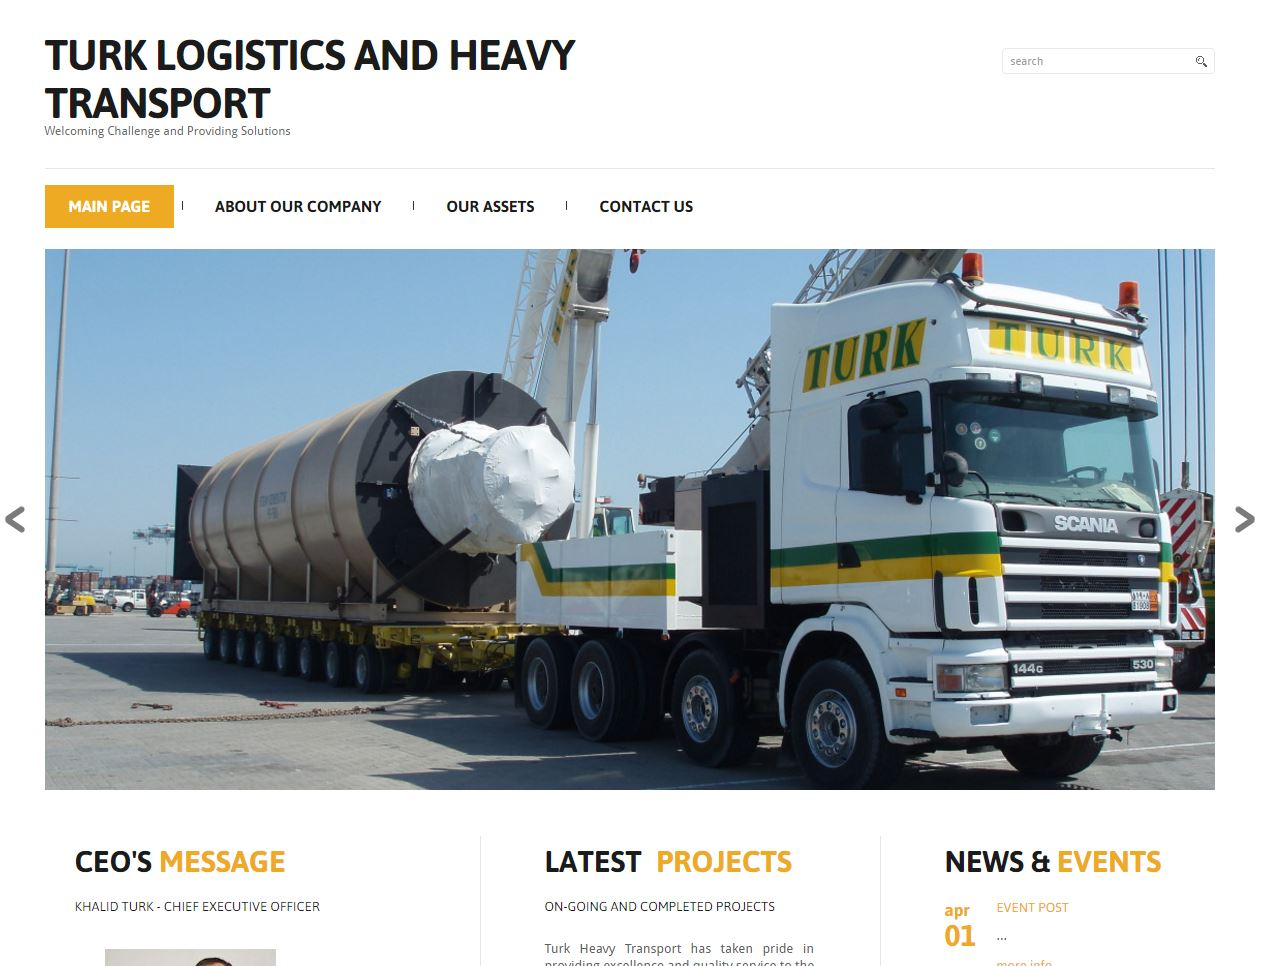 Turk Logistics and Heavy Transport - BHR